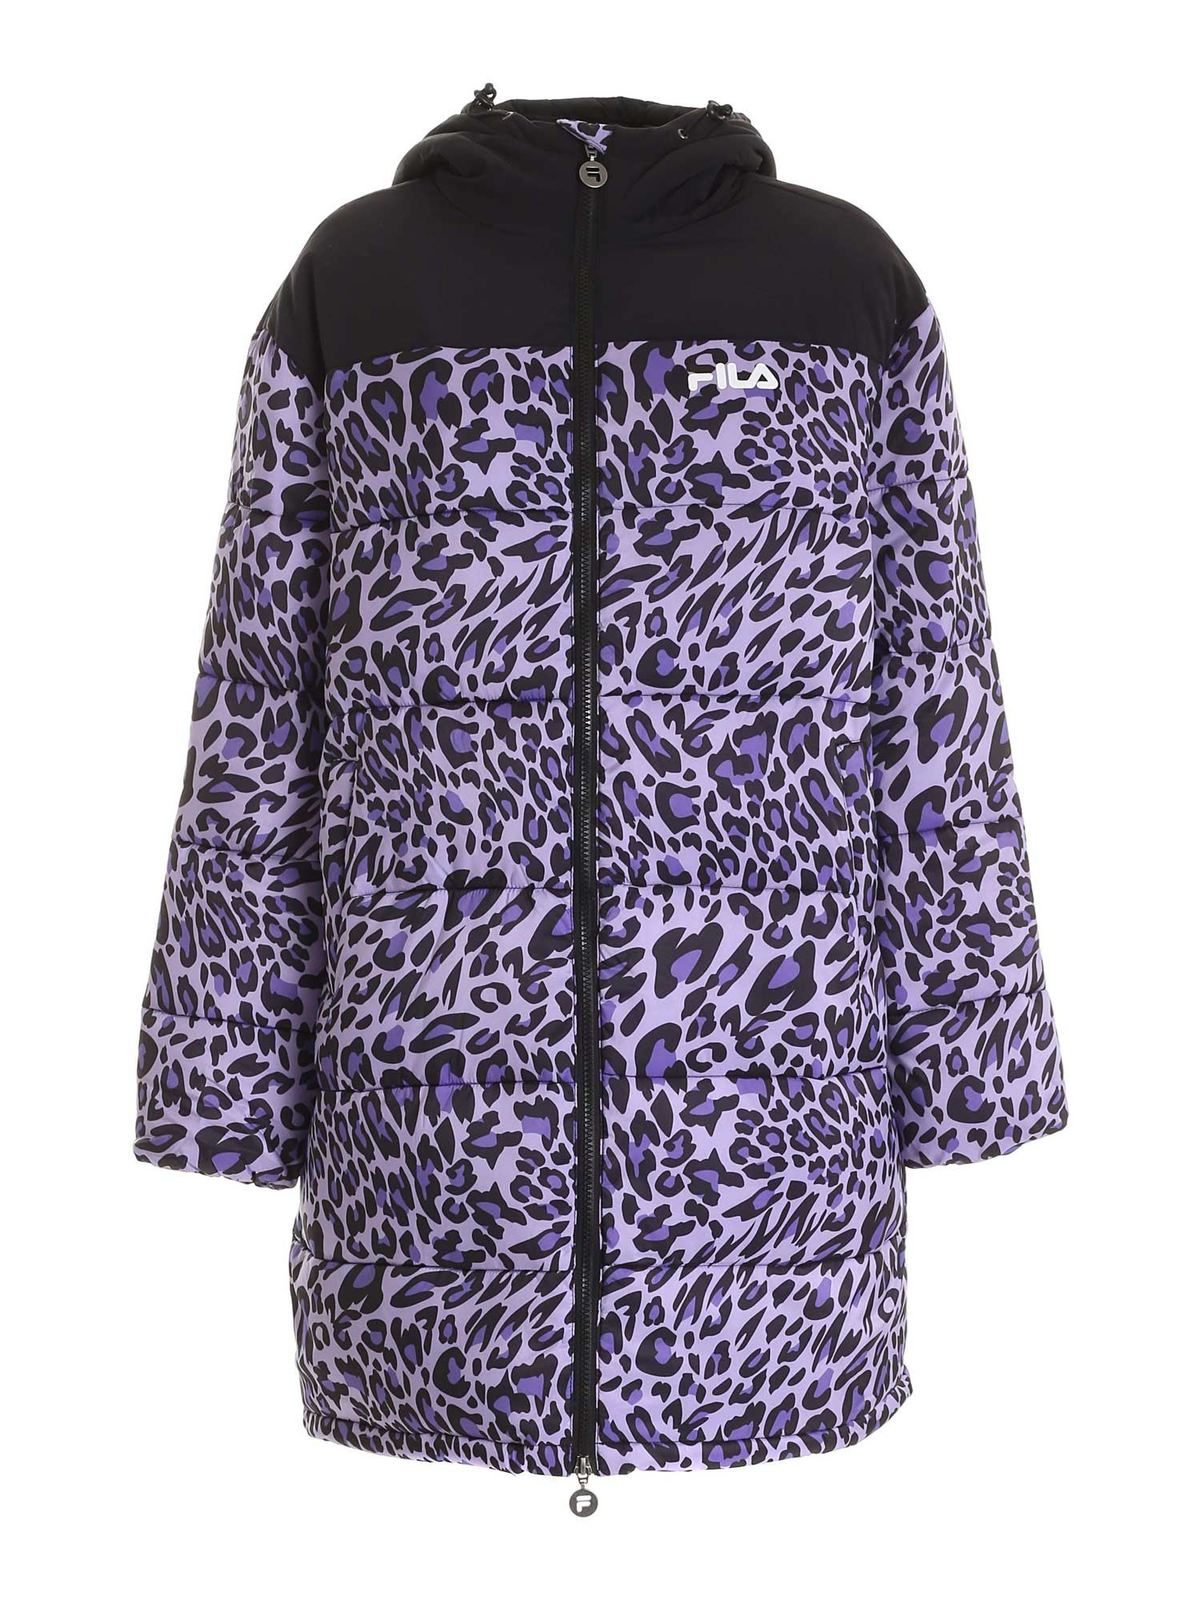 Fila ANIMALIER PRINT PUFFER JACKET IN PURPLE